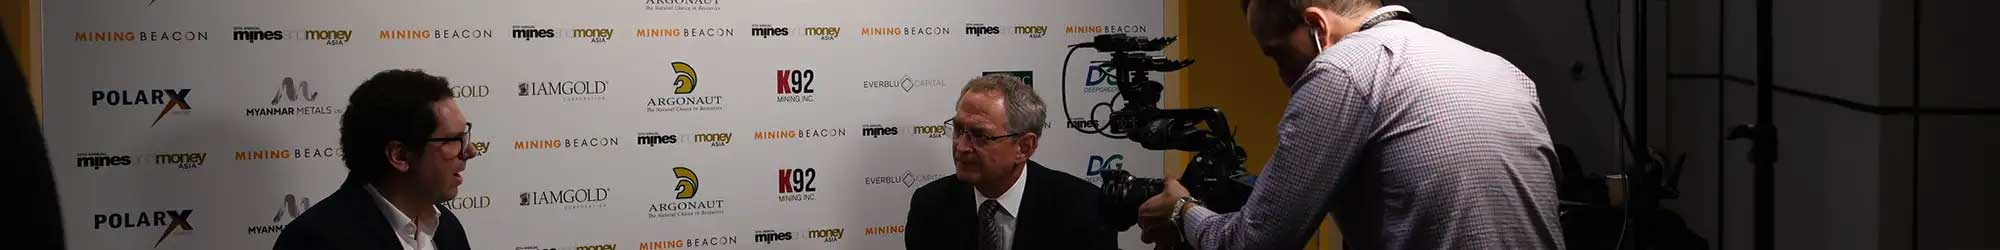 News - About | Mines and Money Asia